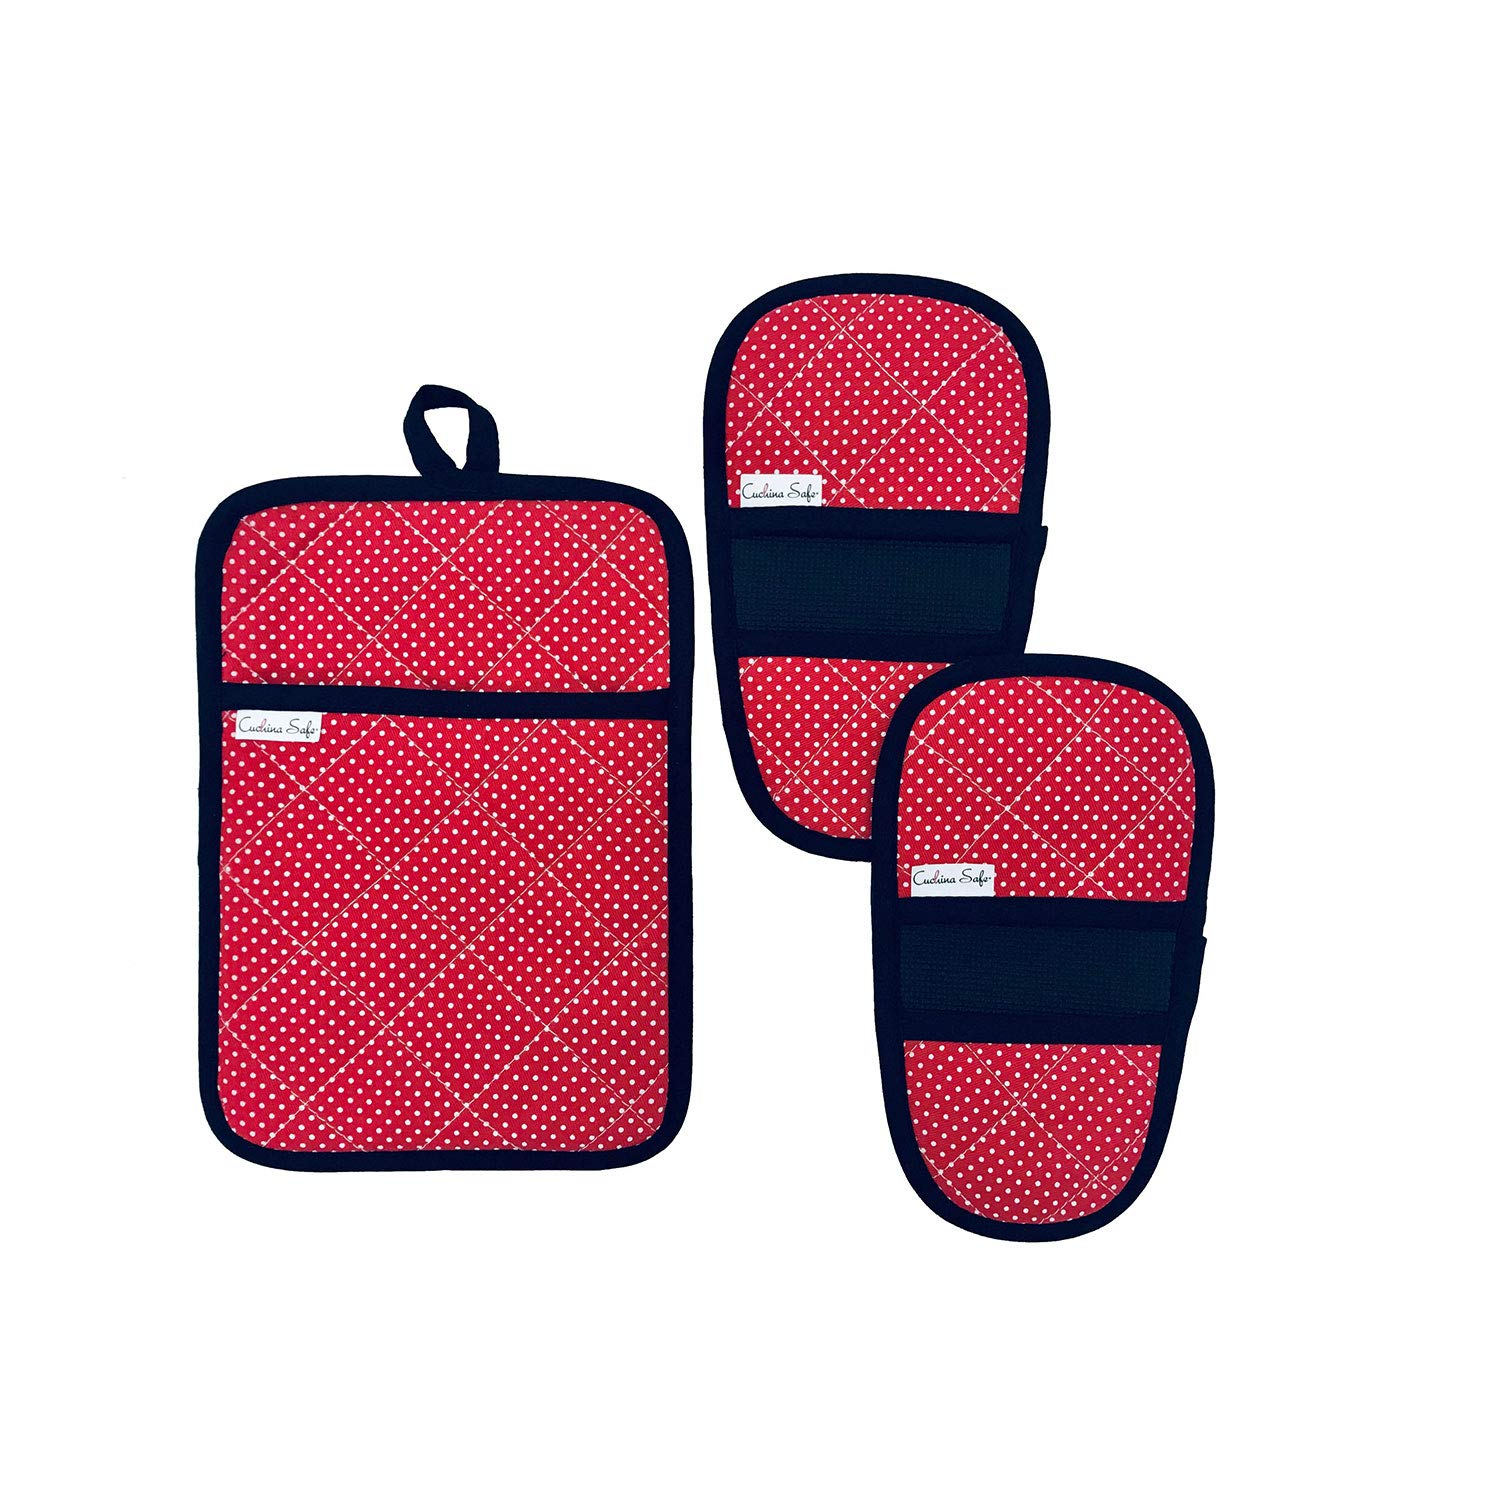 Cuchina Safe Heat Resistant Oven Mini Mitts with Pot Holder Pouch - 3 Piece Set (Red)